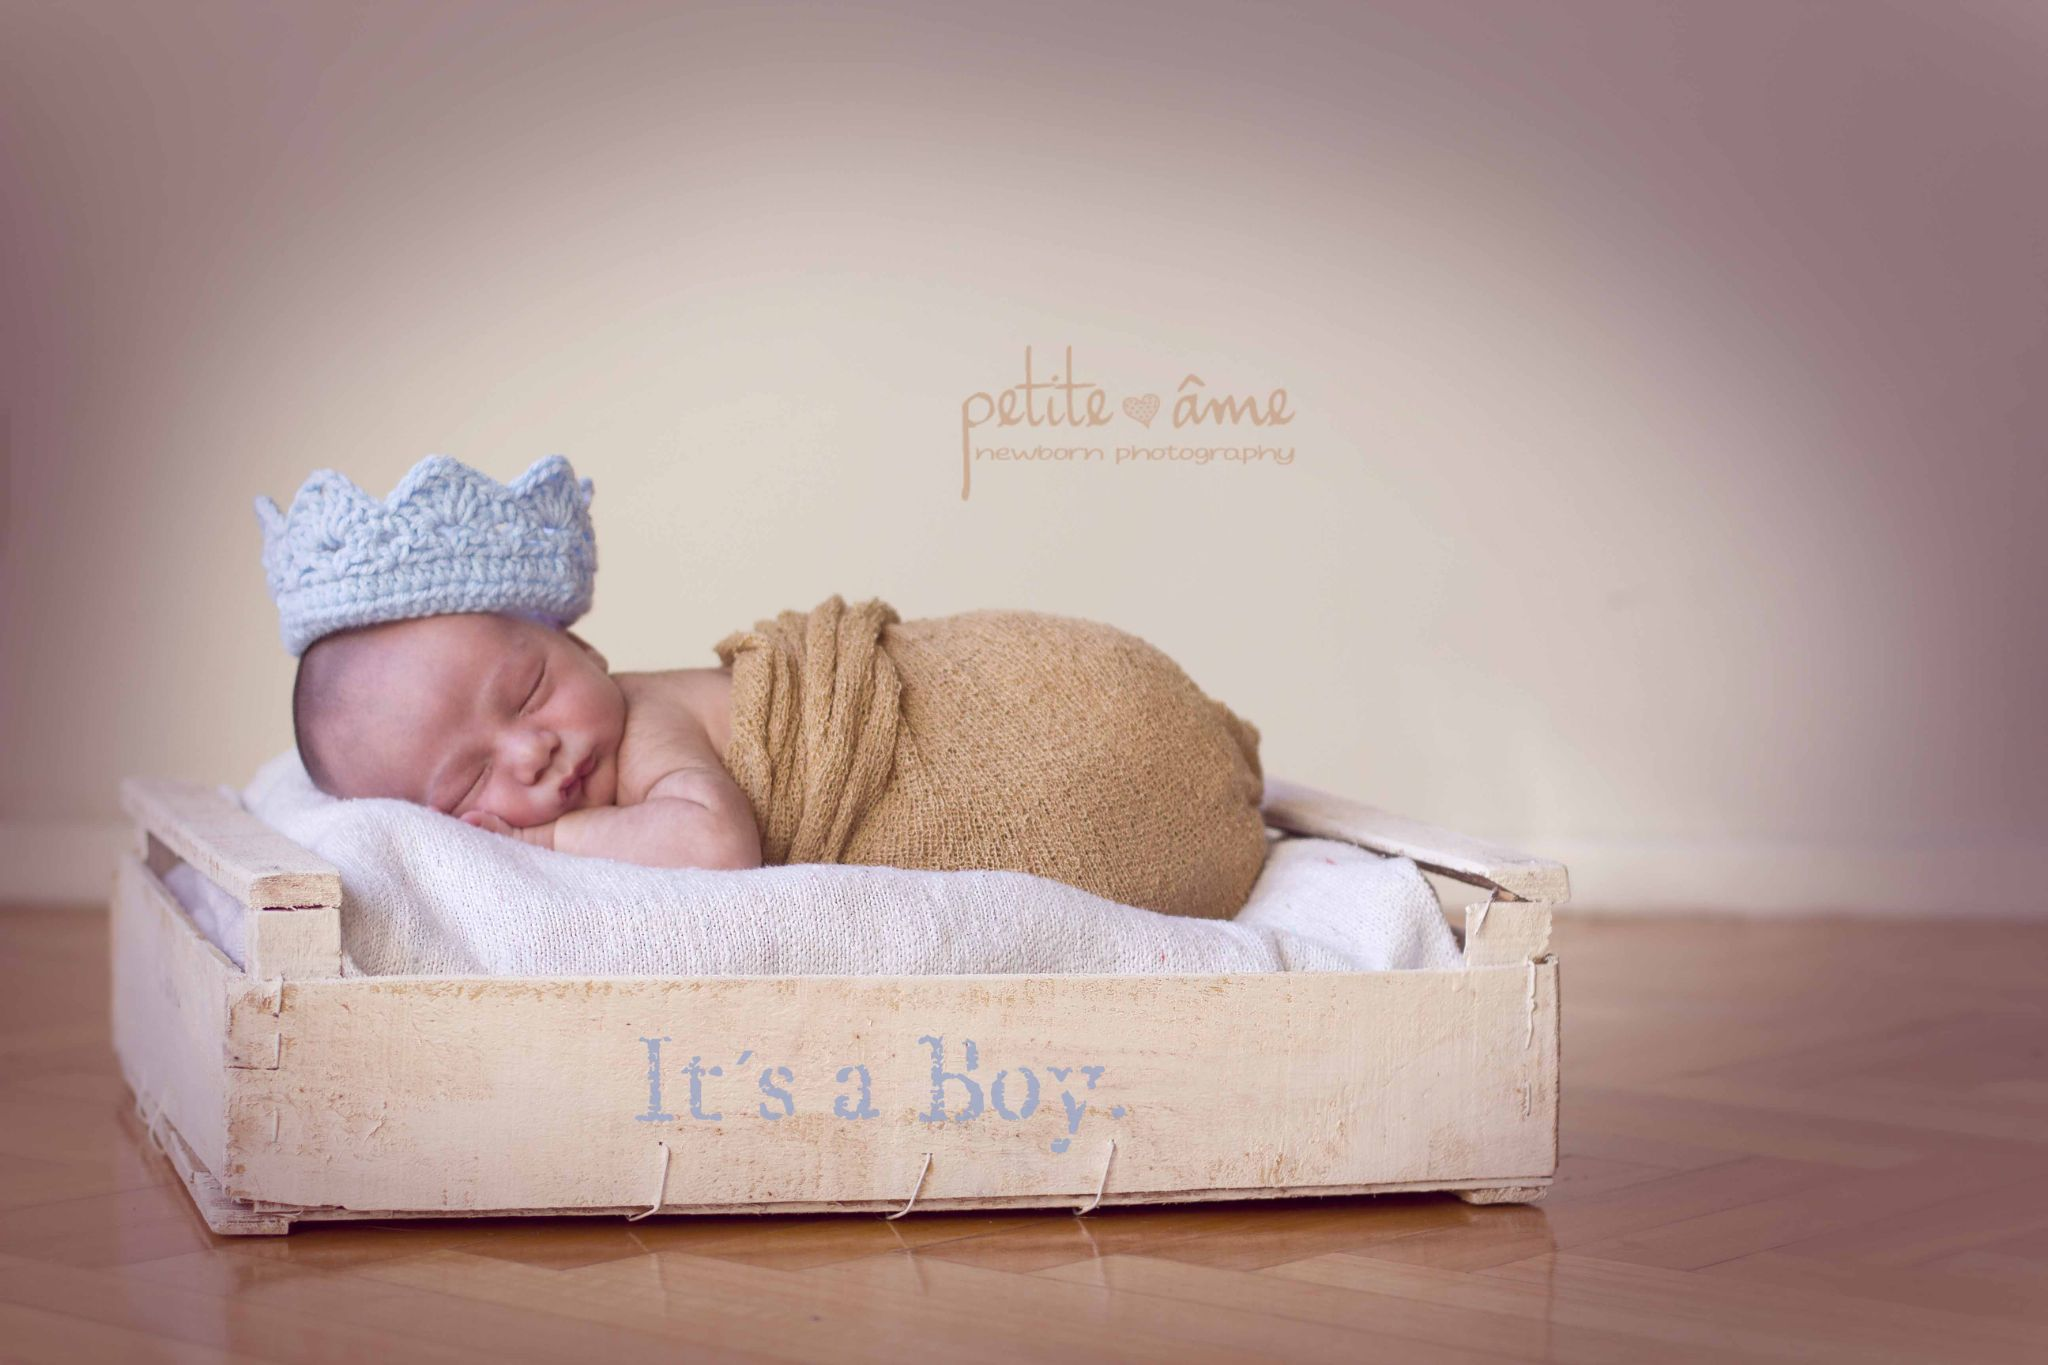 santino 9 days old by petite.ame.nb